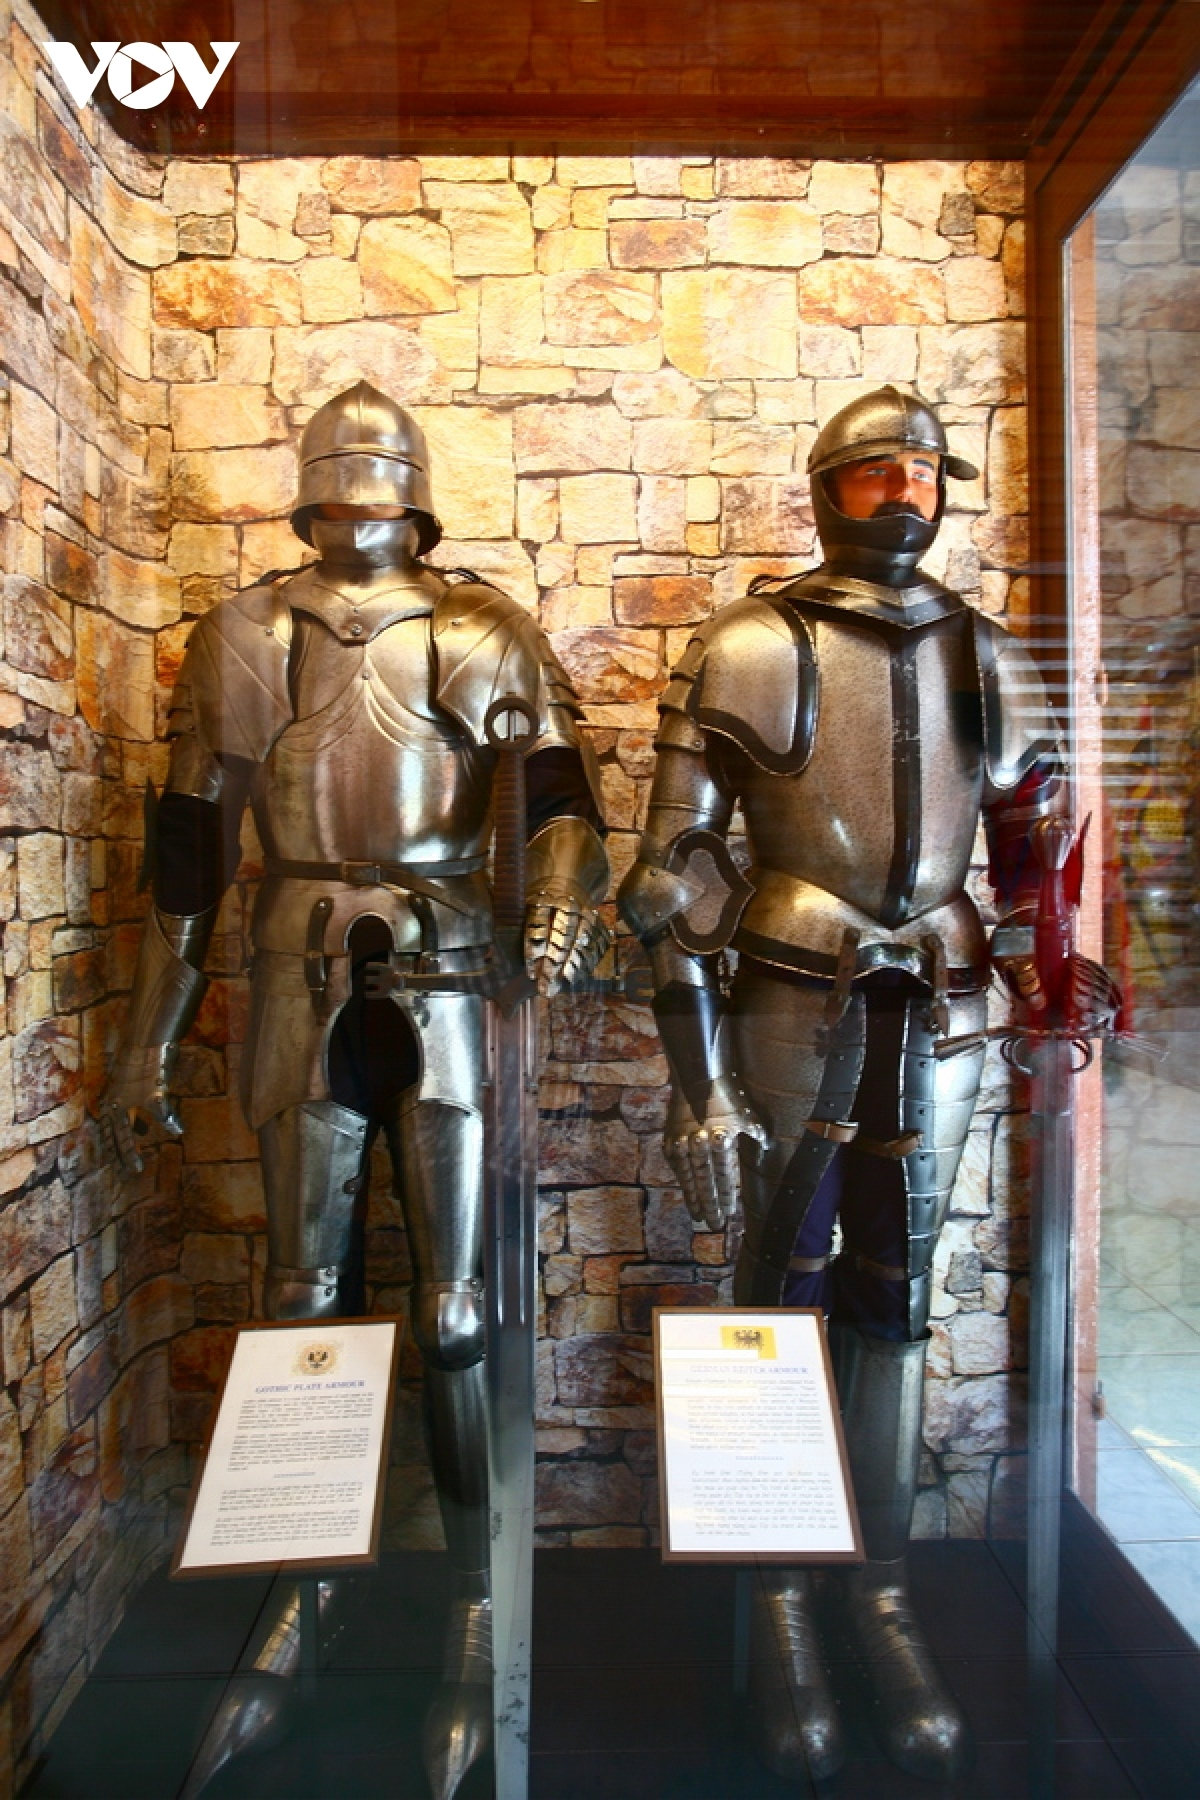 Wealthy soldiers during the medieval period in Europe wore armoured suits.